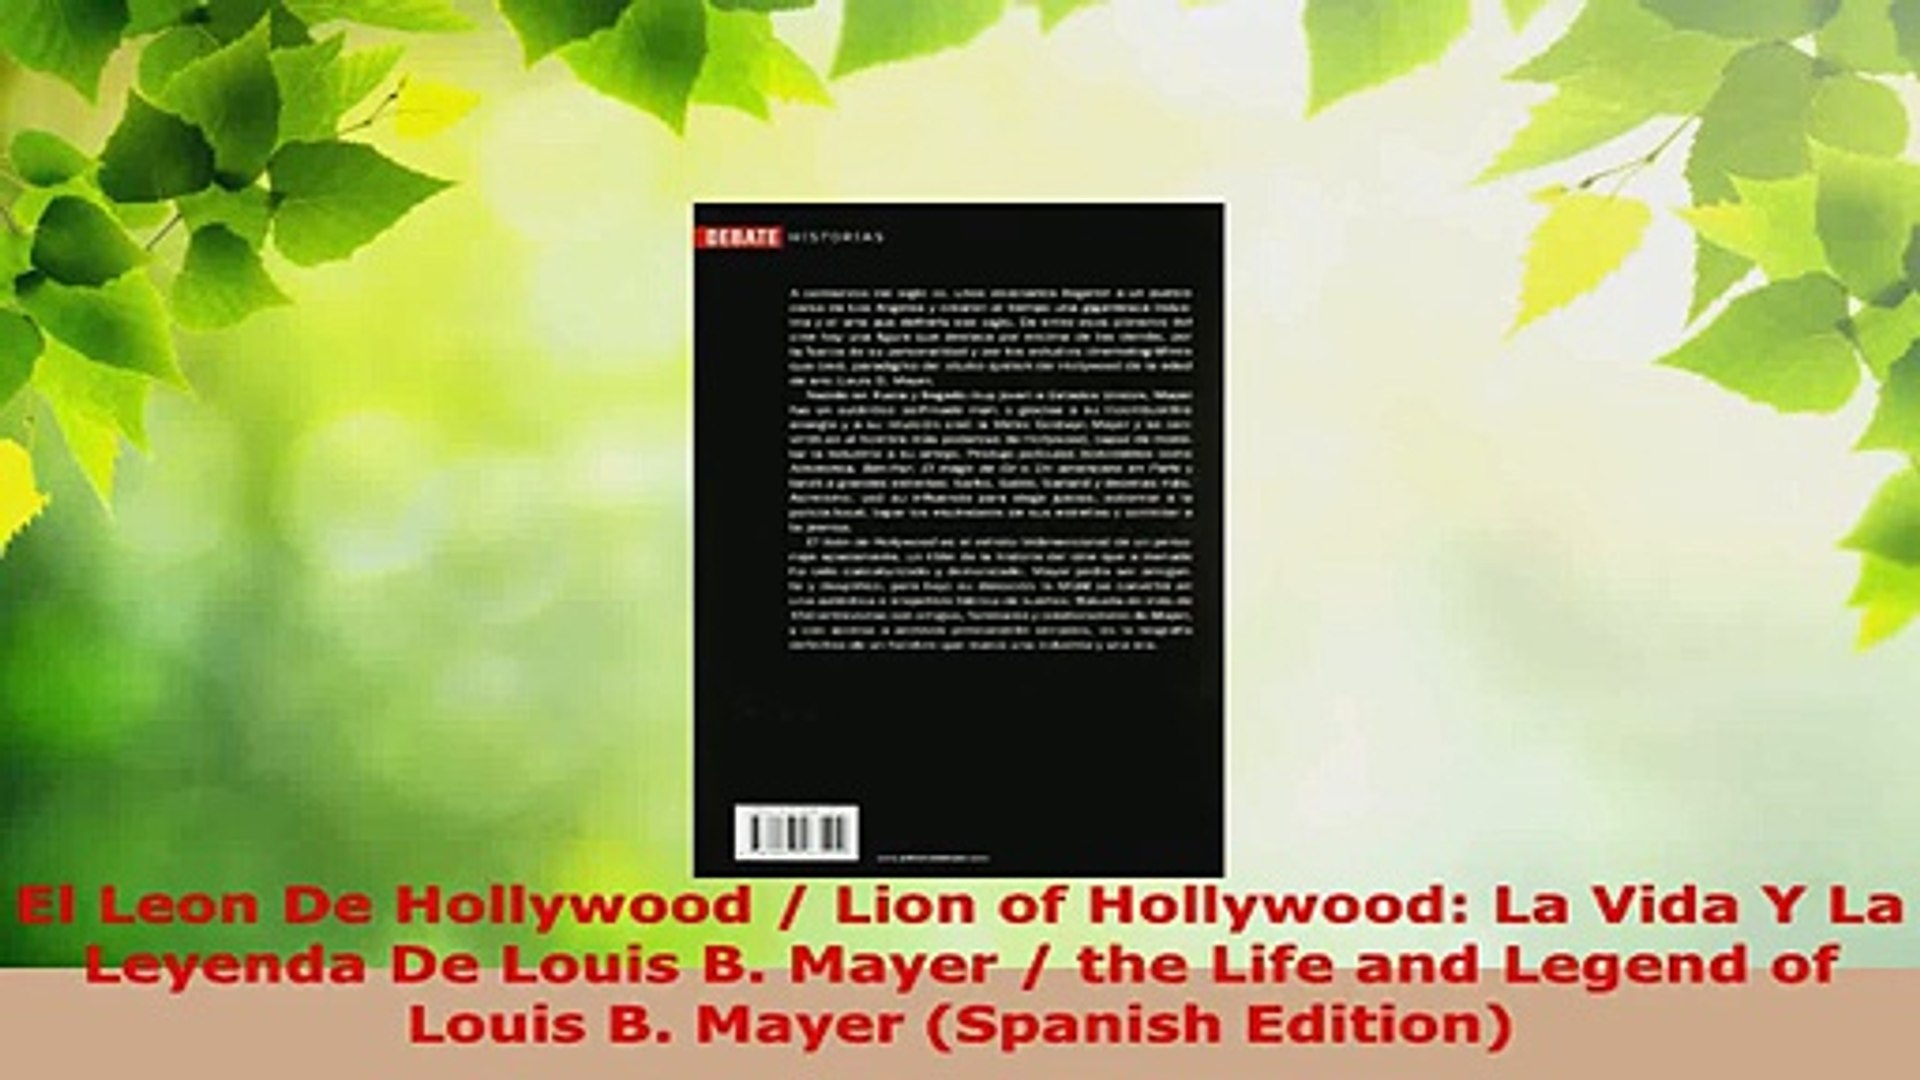 Read  El Leon De Hollywood  Lion of Hollywood La Vida Y La Leyenda De Louis B Mayer  the EBooks Onli